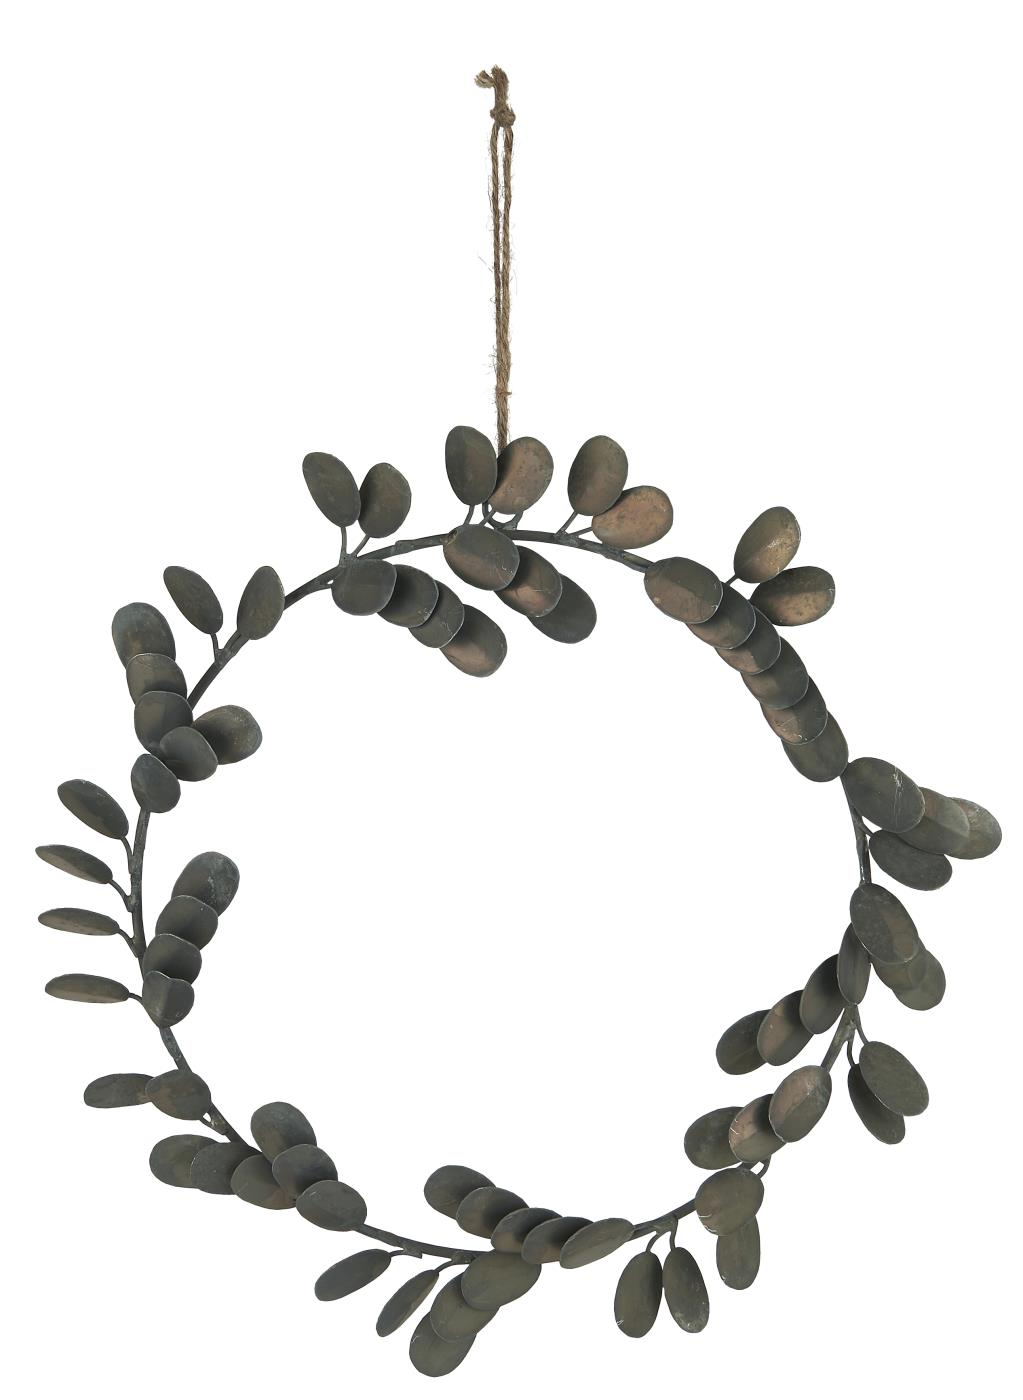 WREATH FOR HANGING LEAVES